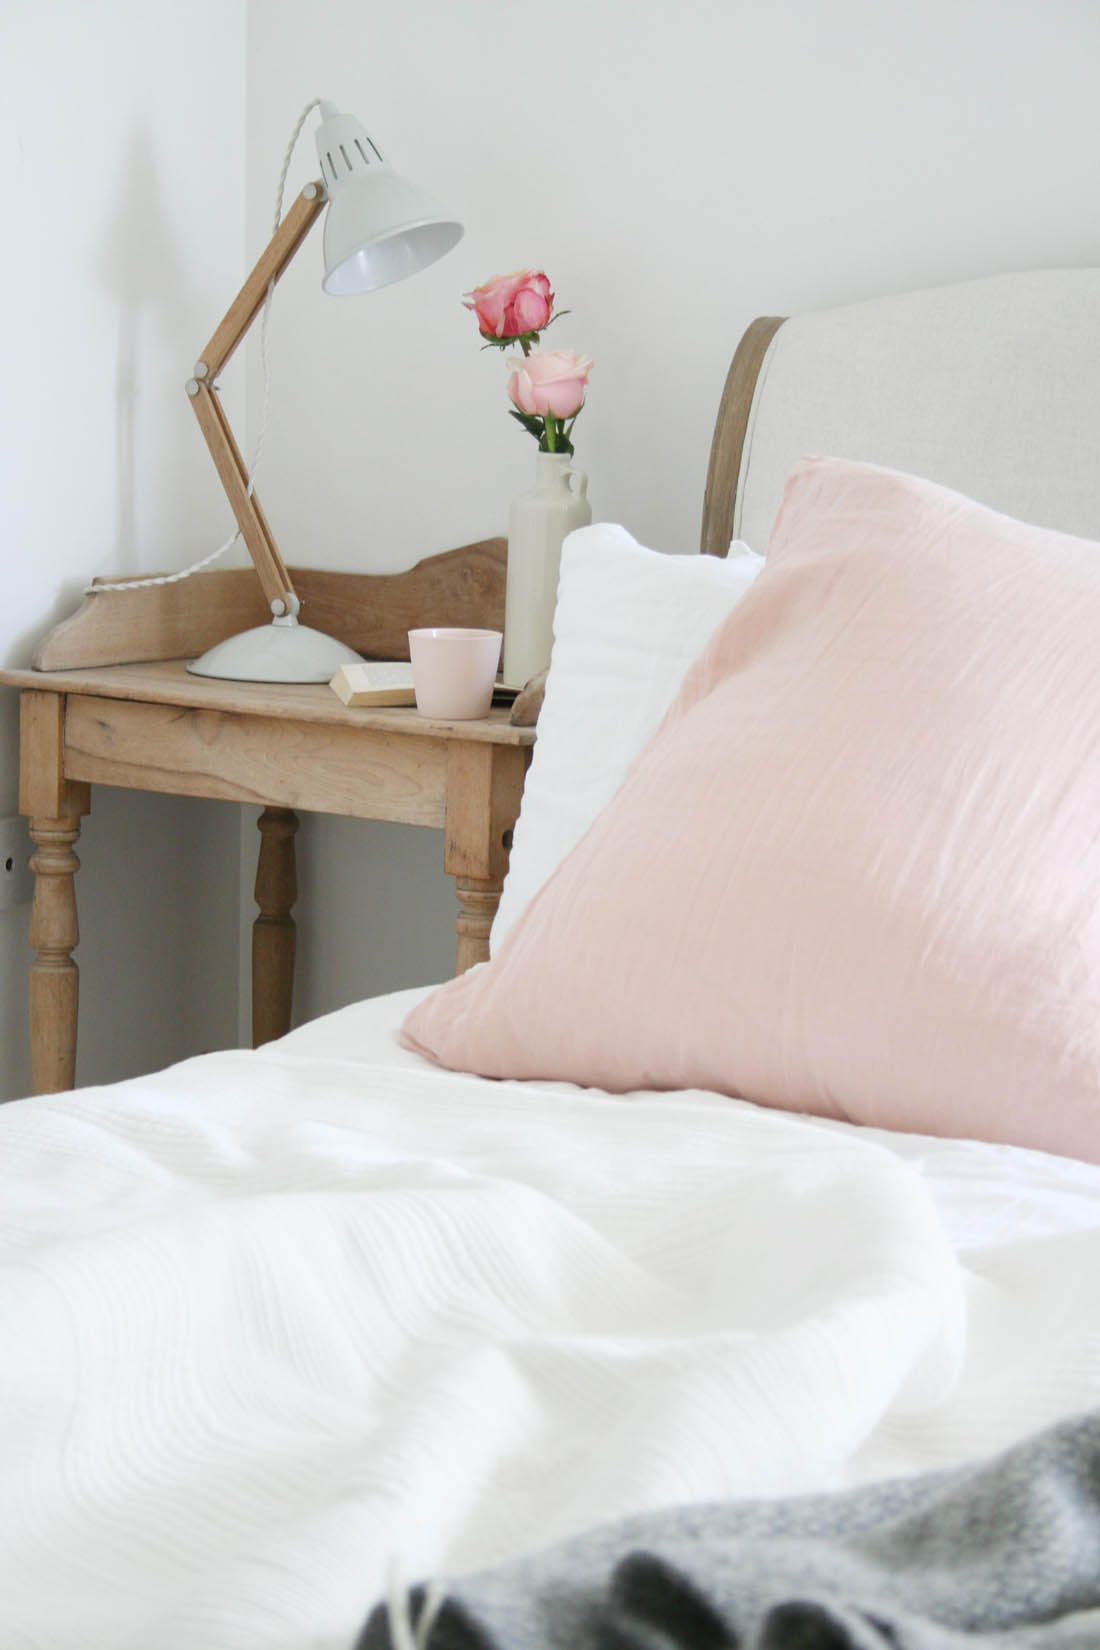 Foam mattress review with Leesa | Golden Retriever on bed | White bedroom with blush pink accents | Apartment Apothecary